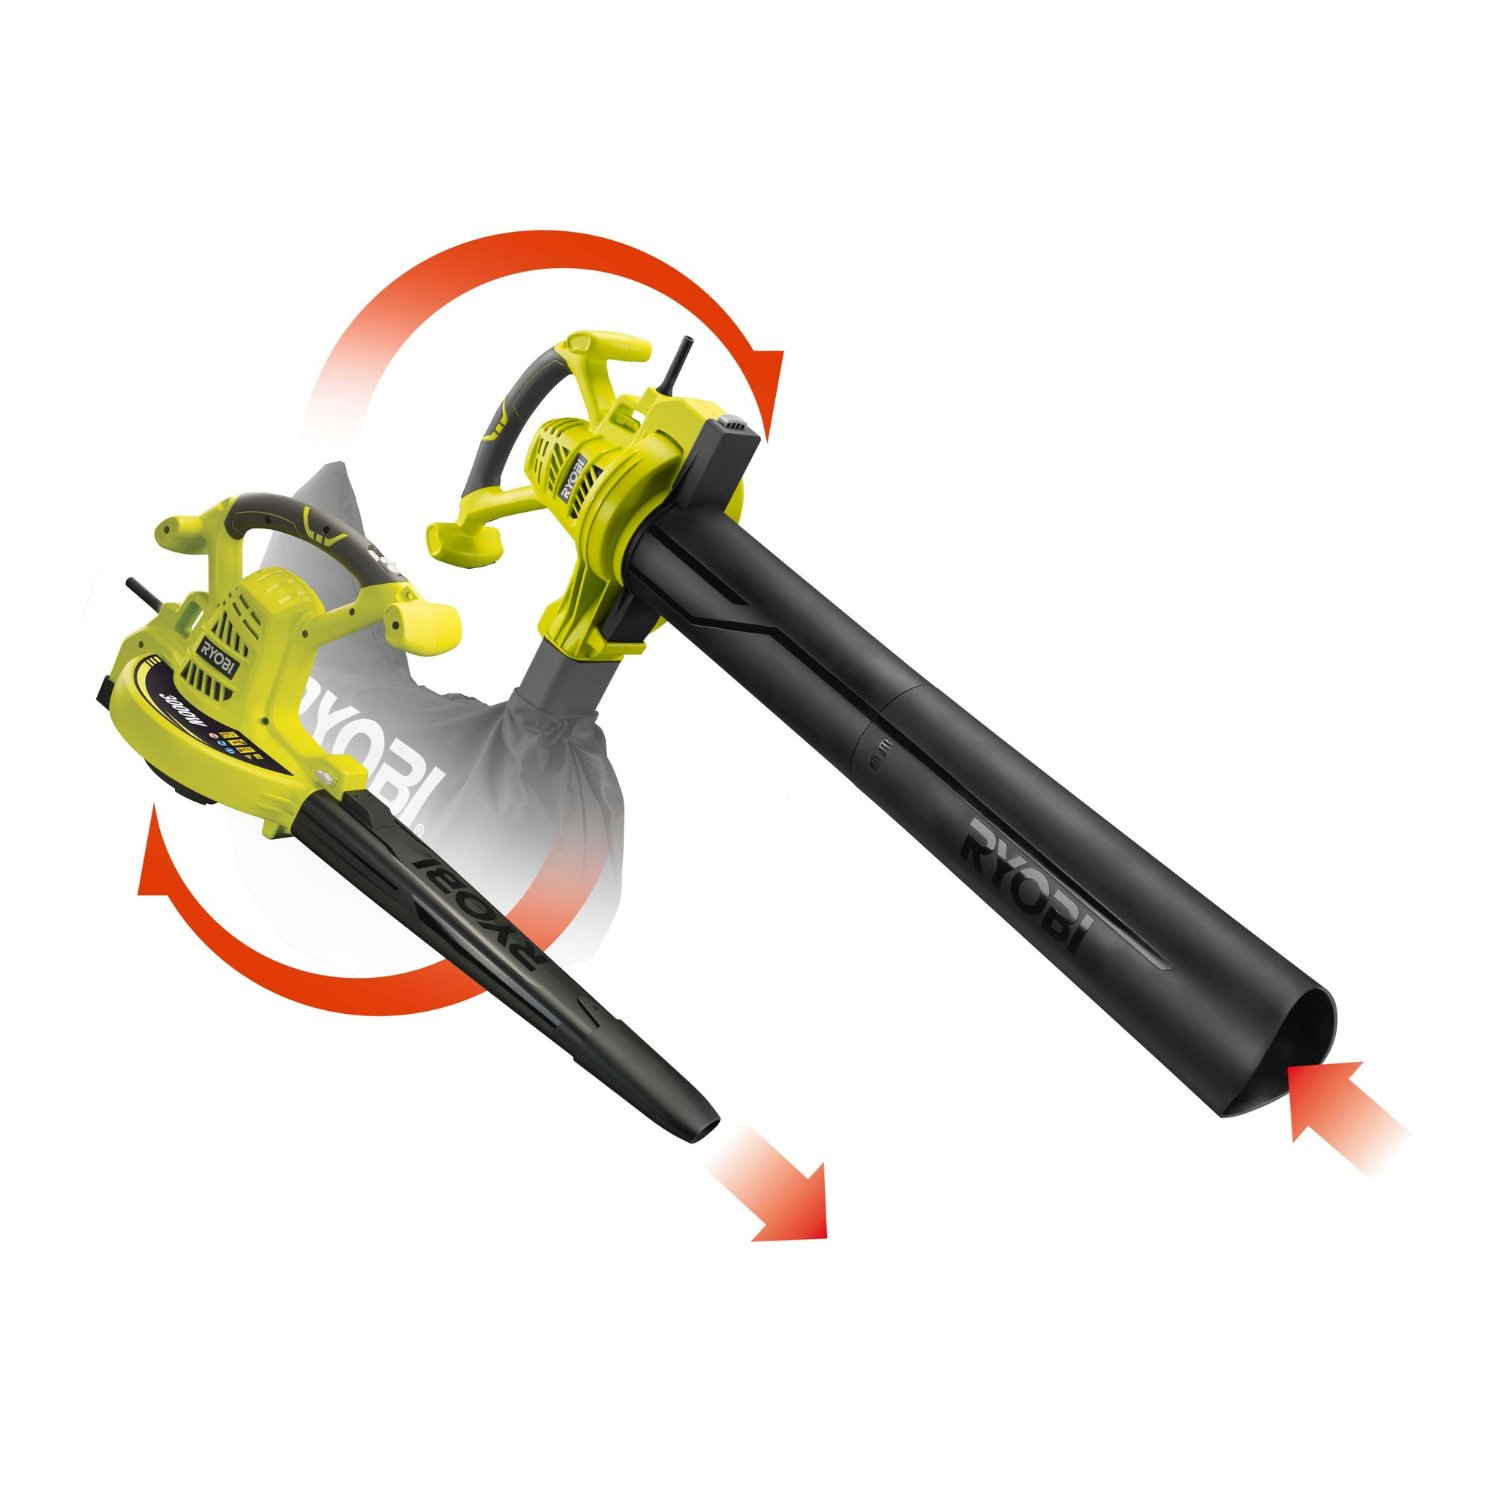 Electric Blowers Product : Garden blowers ryobi electric blower vac rbv csv